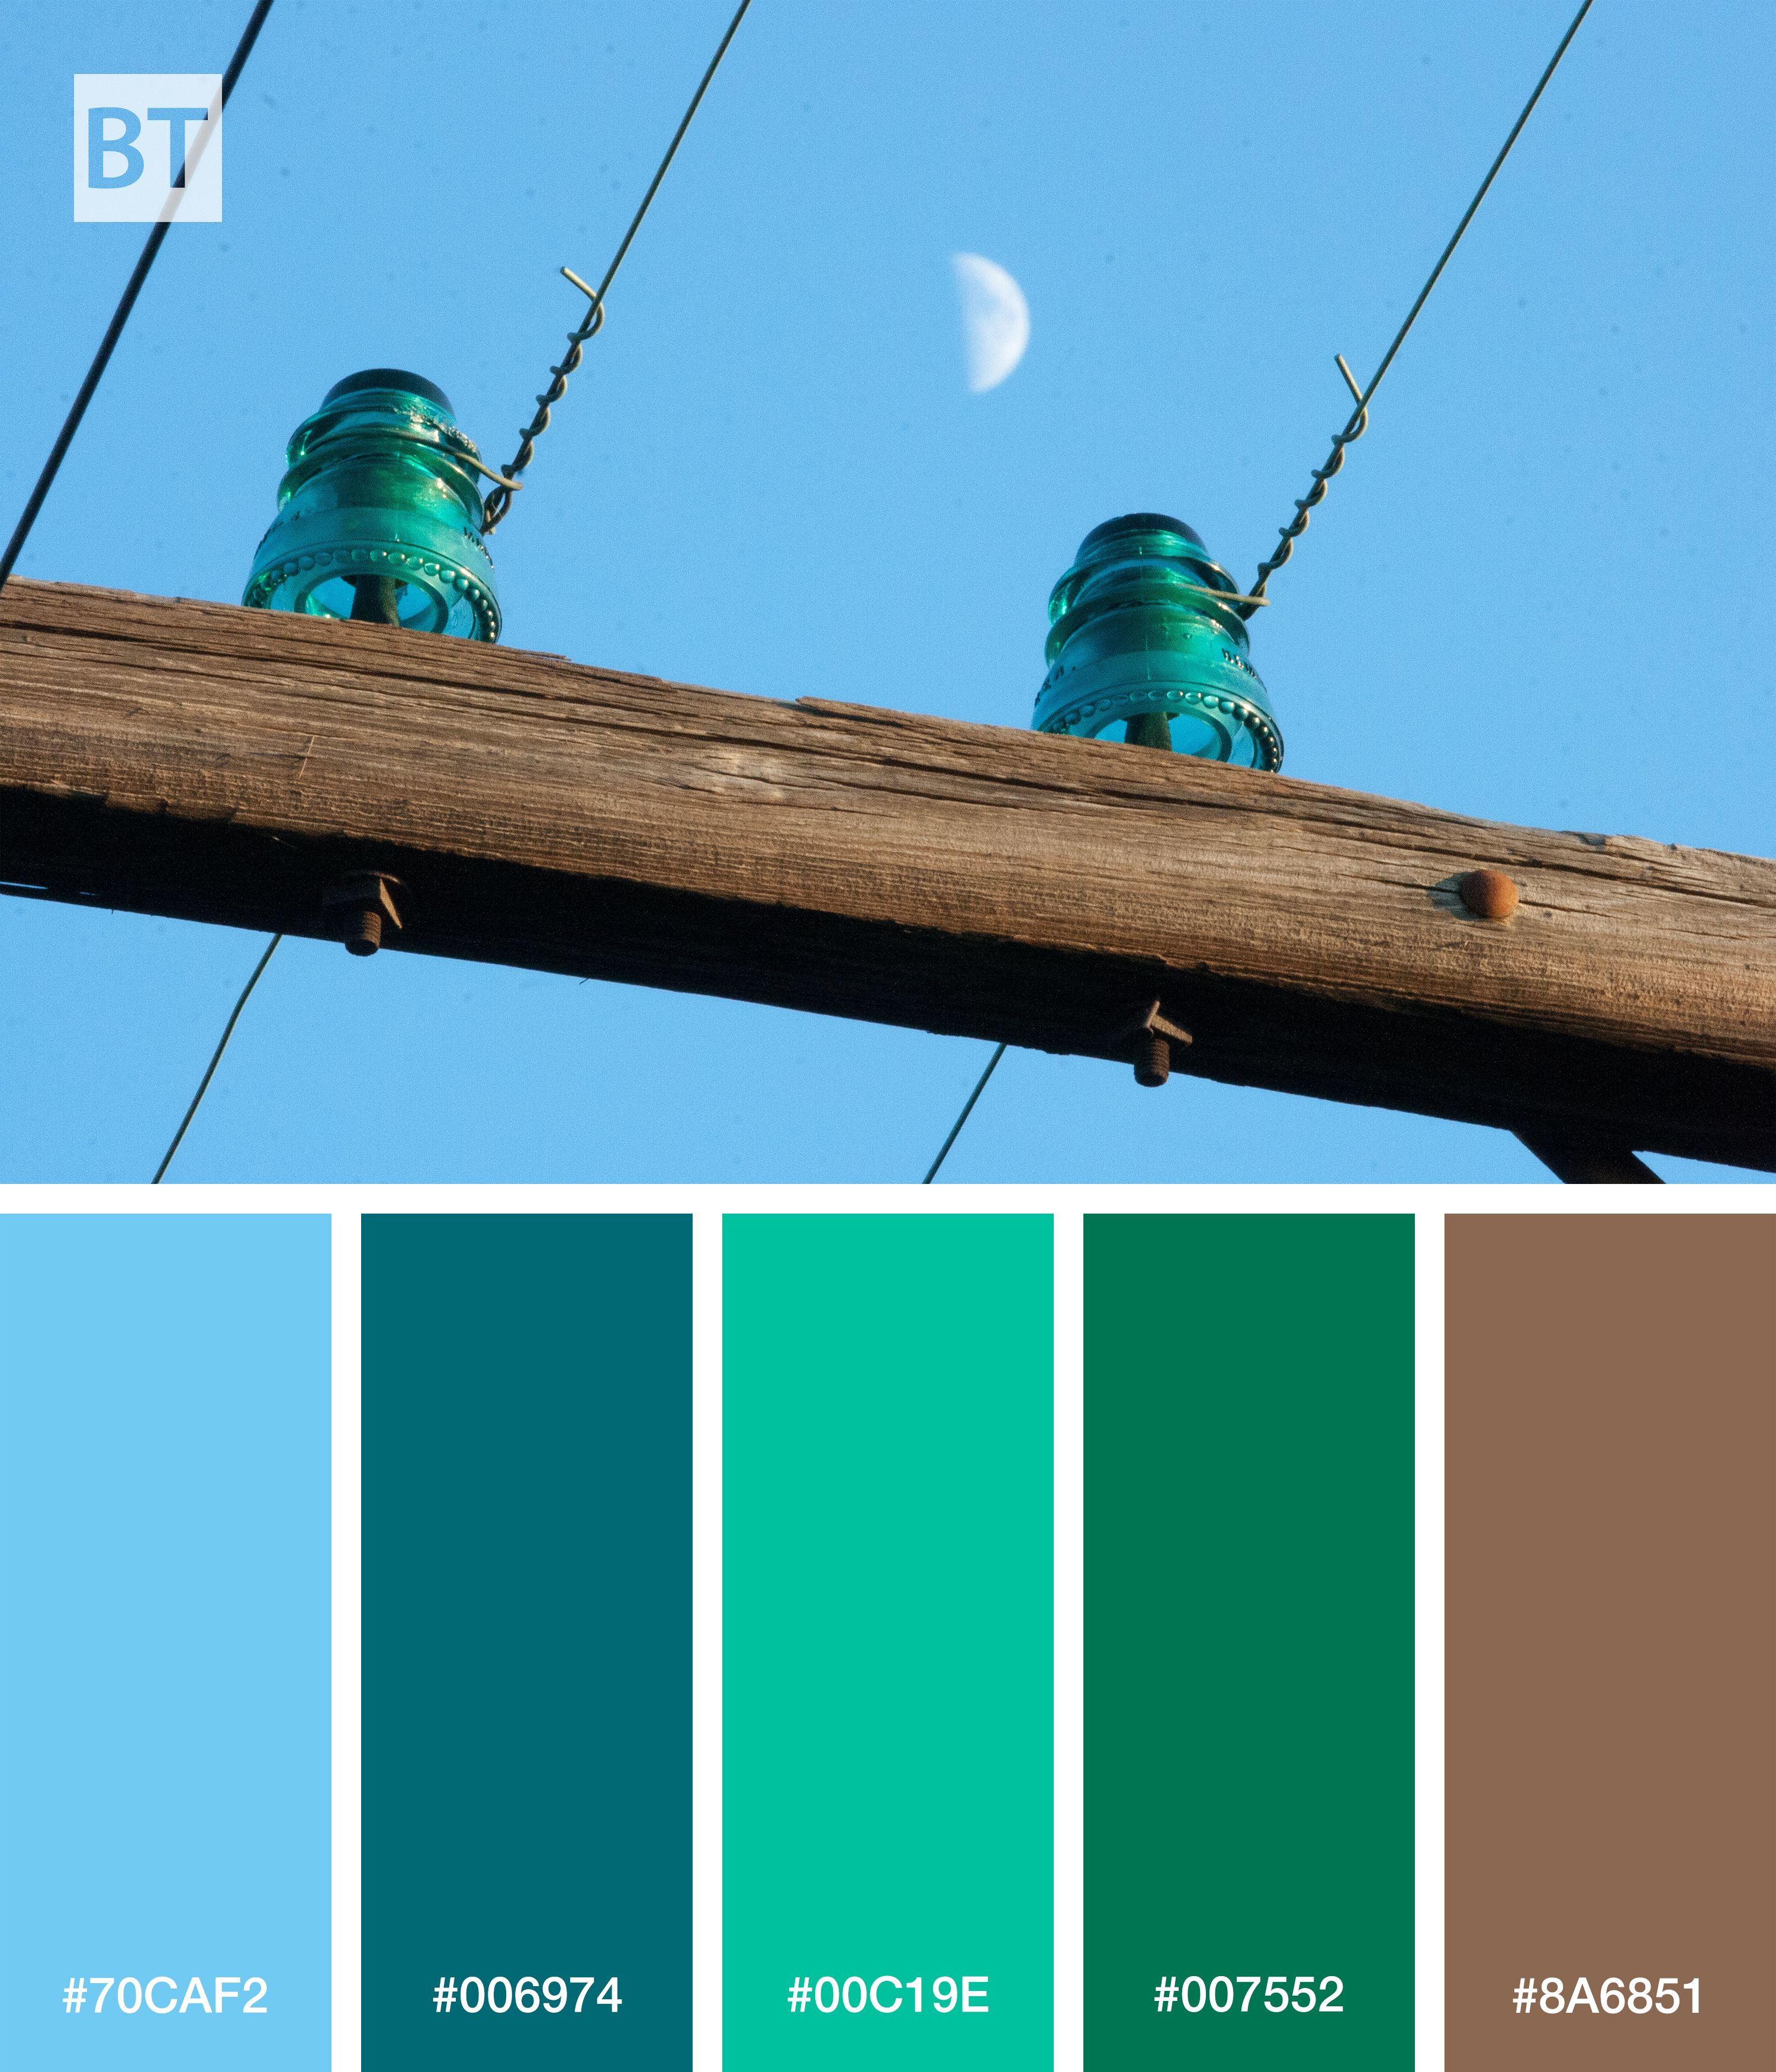 Color palette of old power line glass insulators alongside for Power line insulators glass